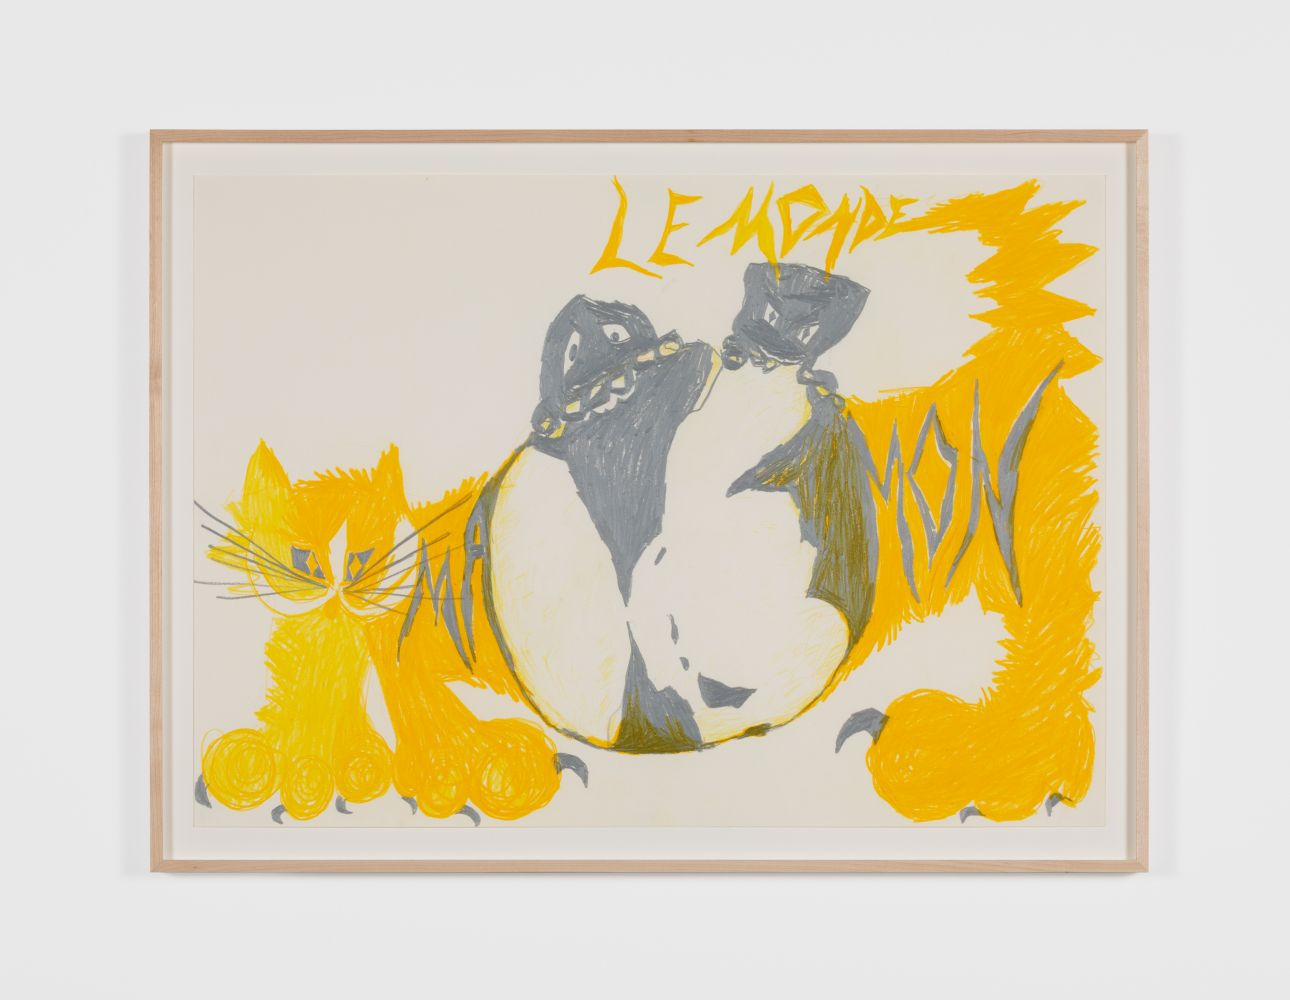 BENDIX HARMS Le Monde Mamon, 2020 Wax crayon on paper 19 3/4 x 27 1/2 in 50 x 70 cm (BHA20.020)